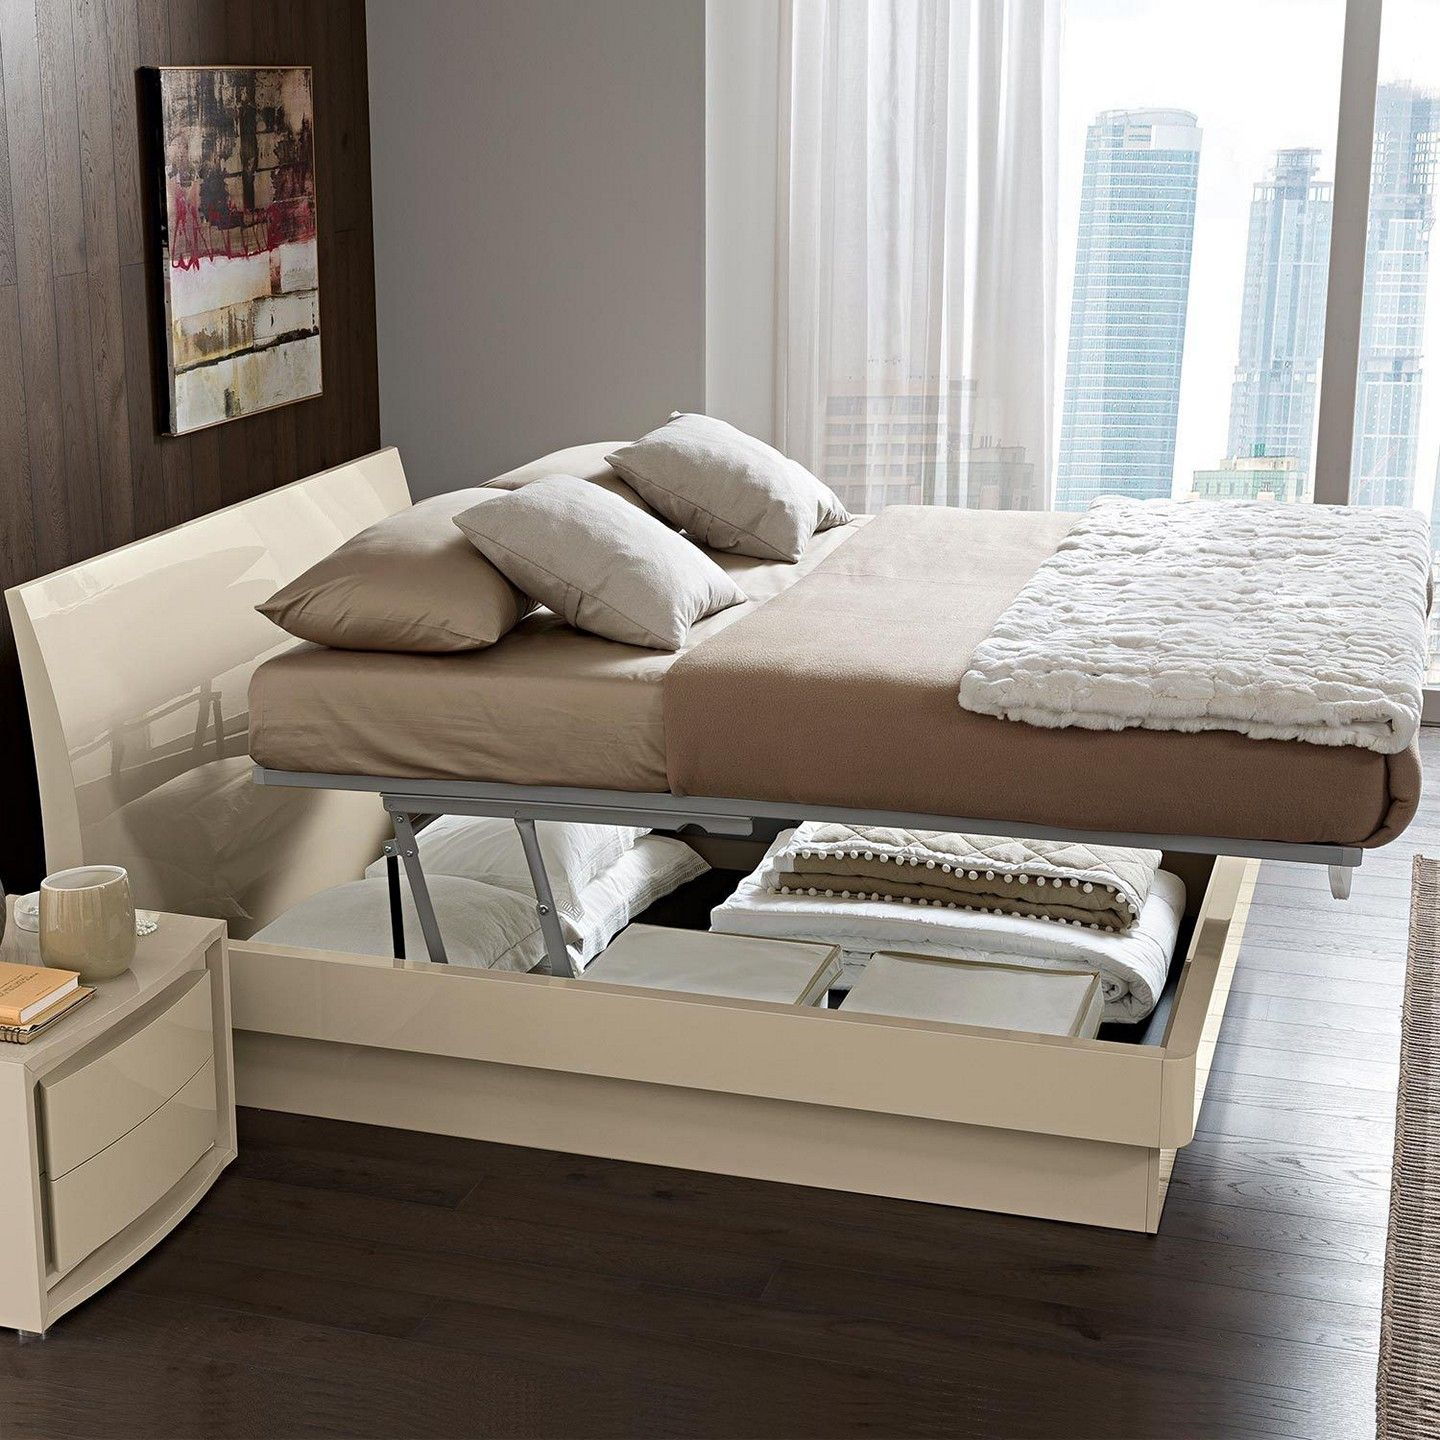 100 Space Saving Small Bedroom Ideas Mattress Storage and Bedrooms